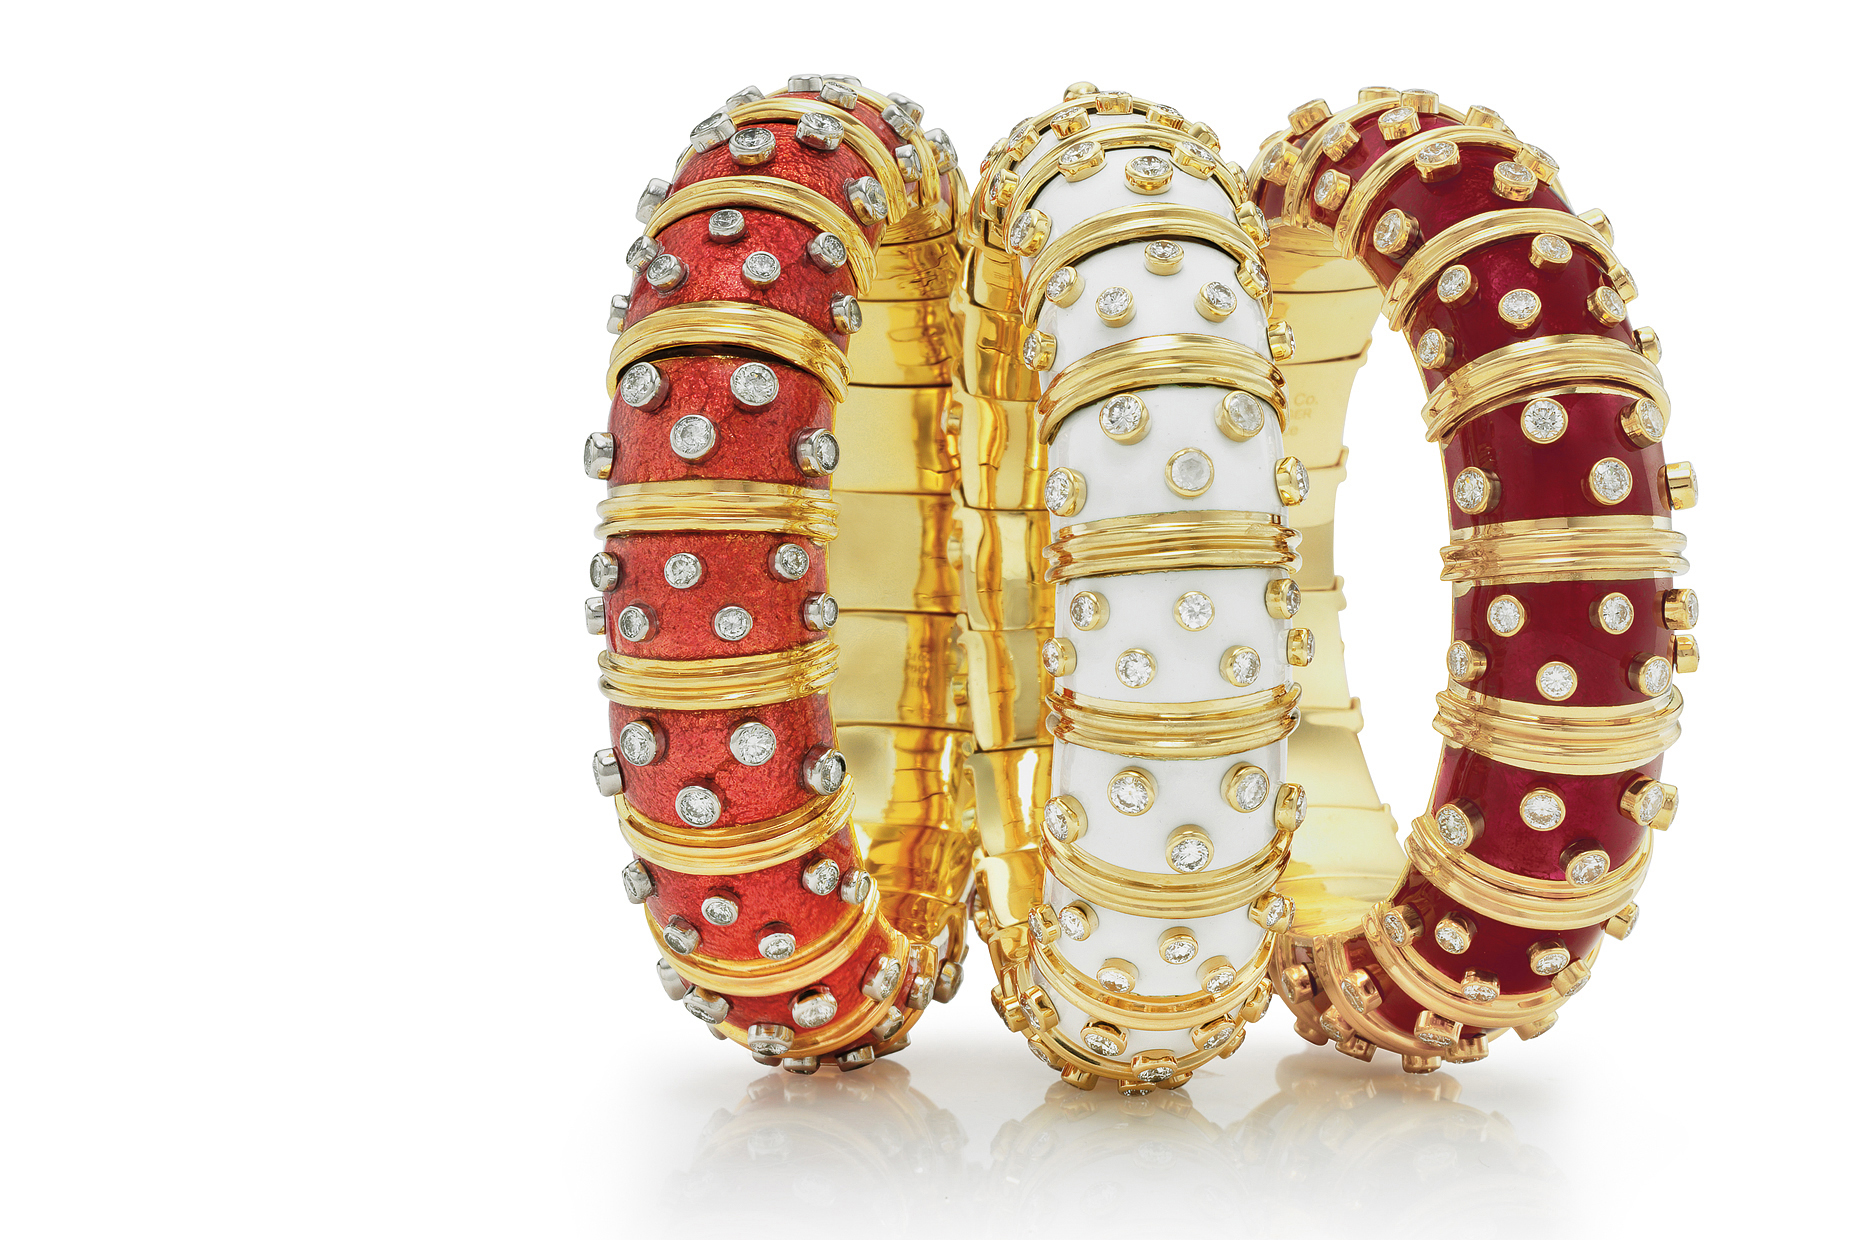 Three  exquisite gold enamel diamond  bracelets standing together